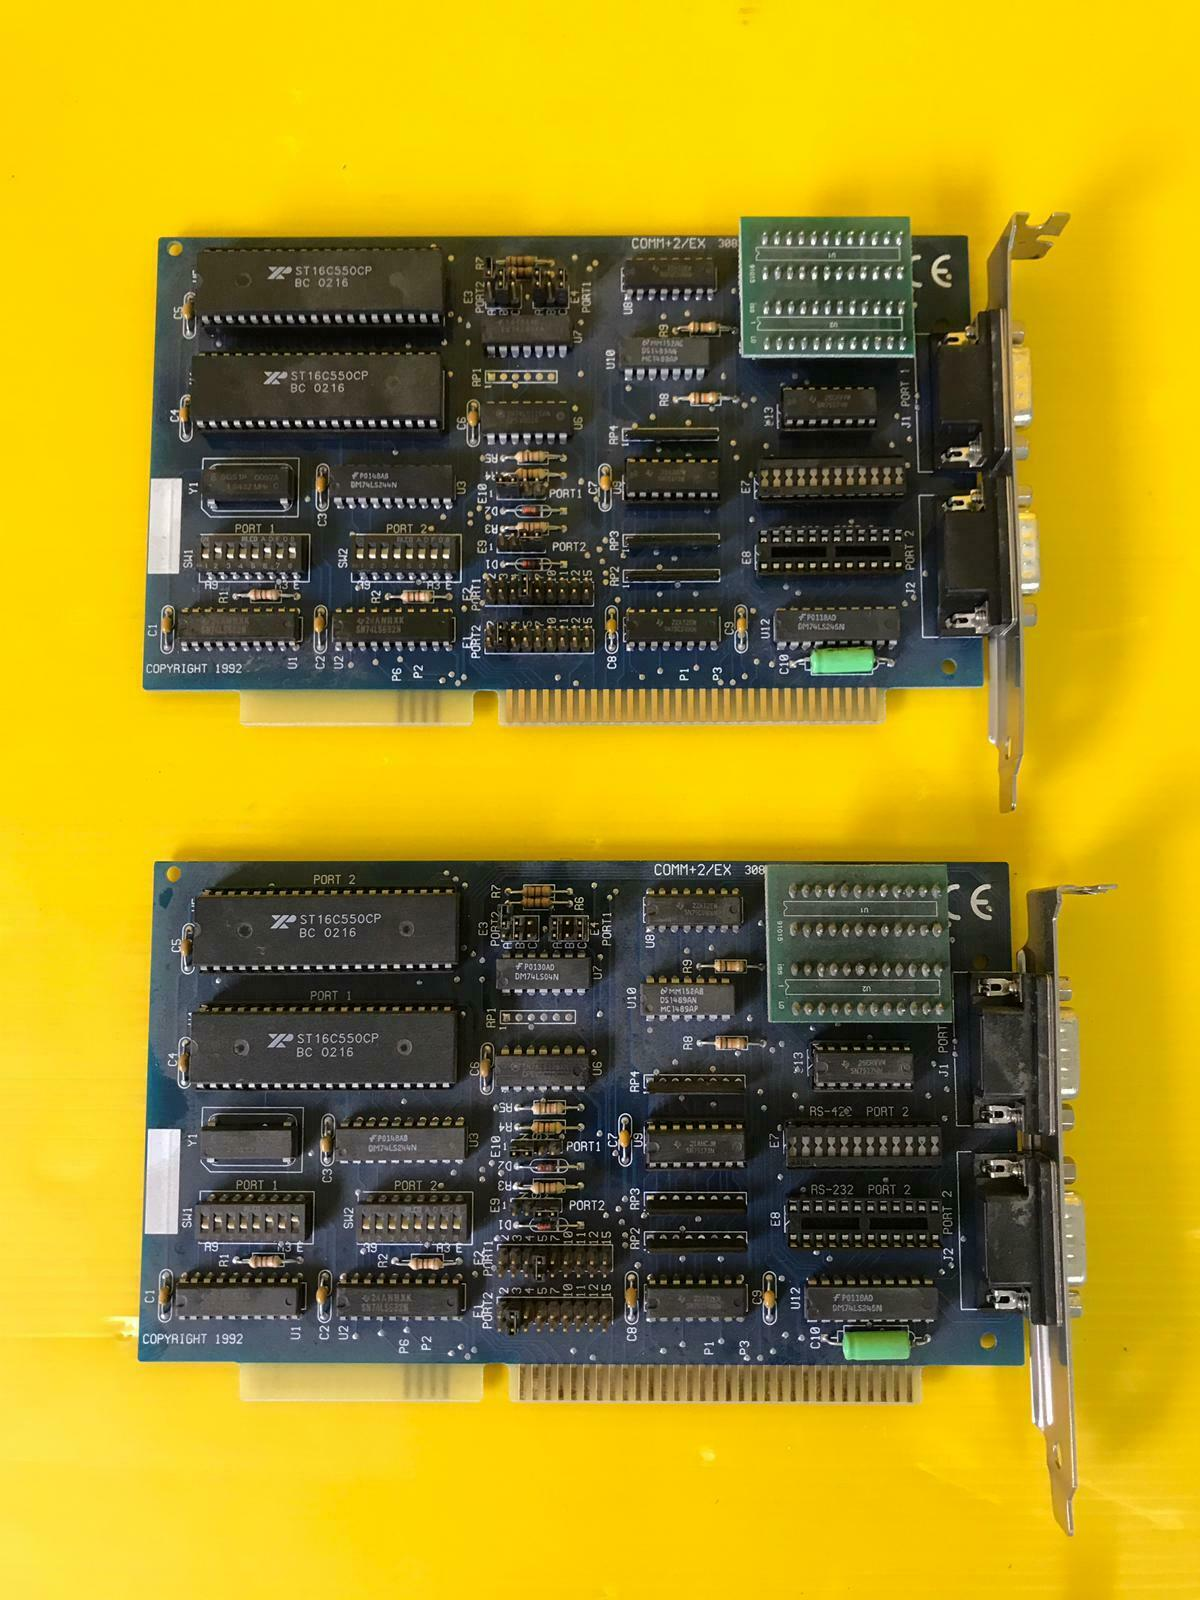 2pcs KONTRON SPRT2B AT Advanced Multi-Channel Interface Andserial Card